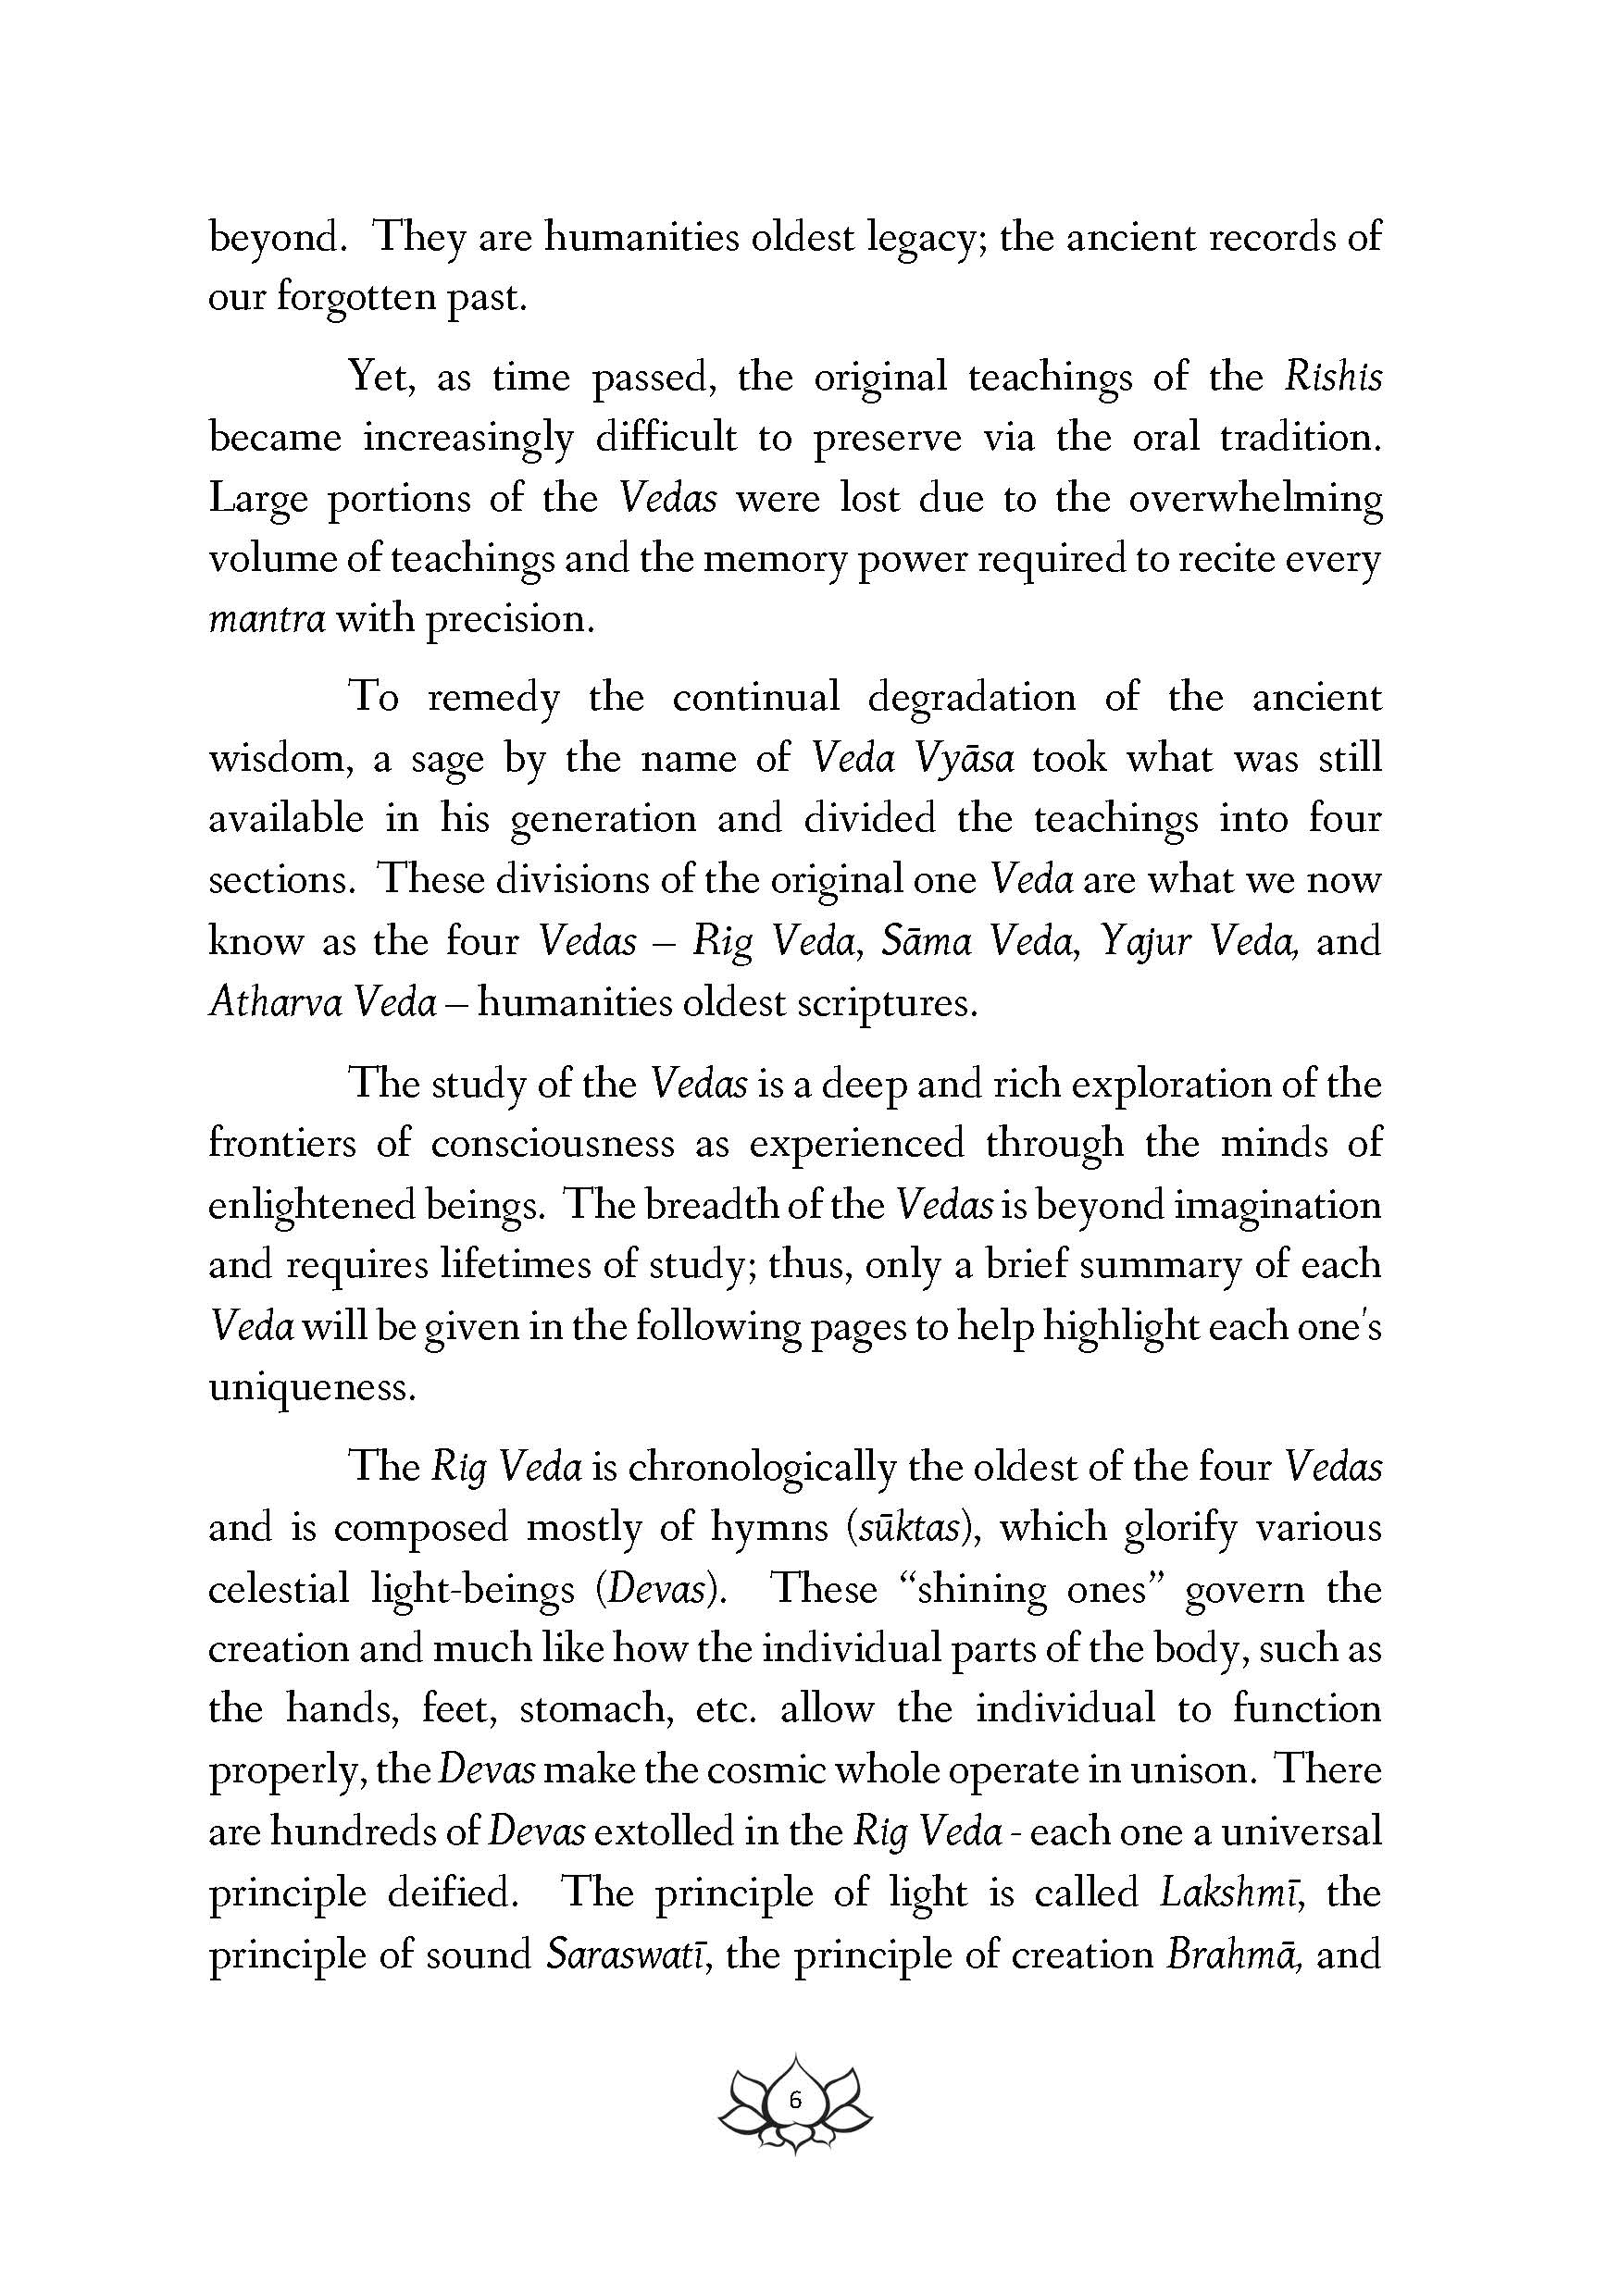 The Way of Oneness - PDF Download_Page_019